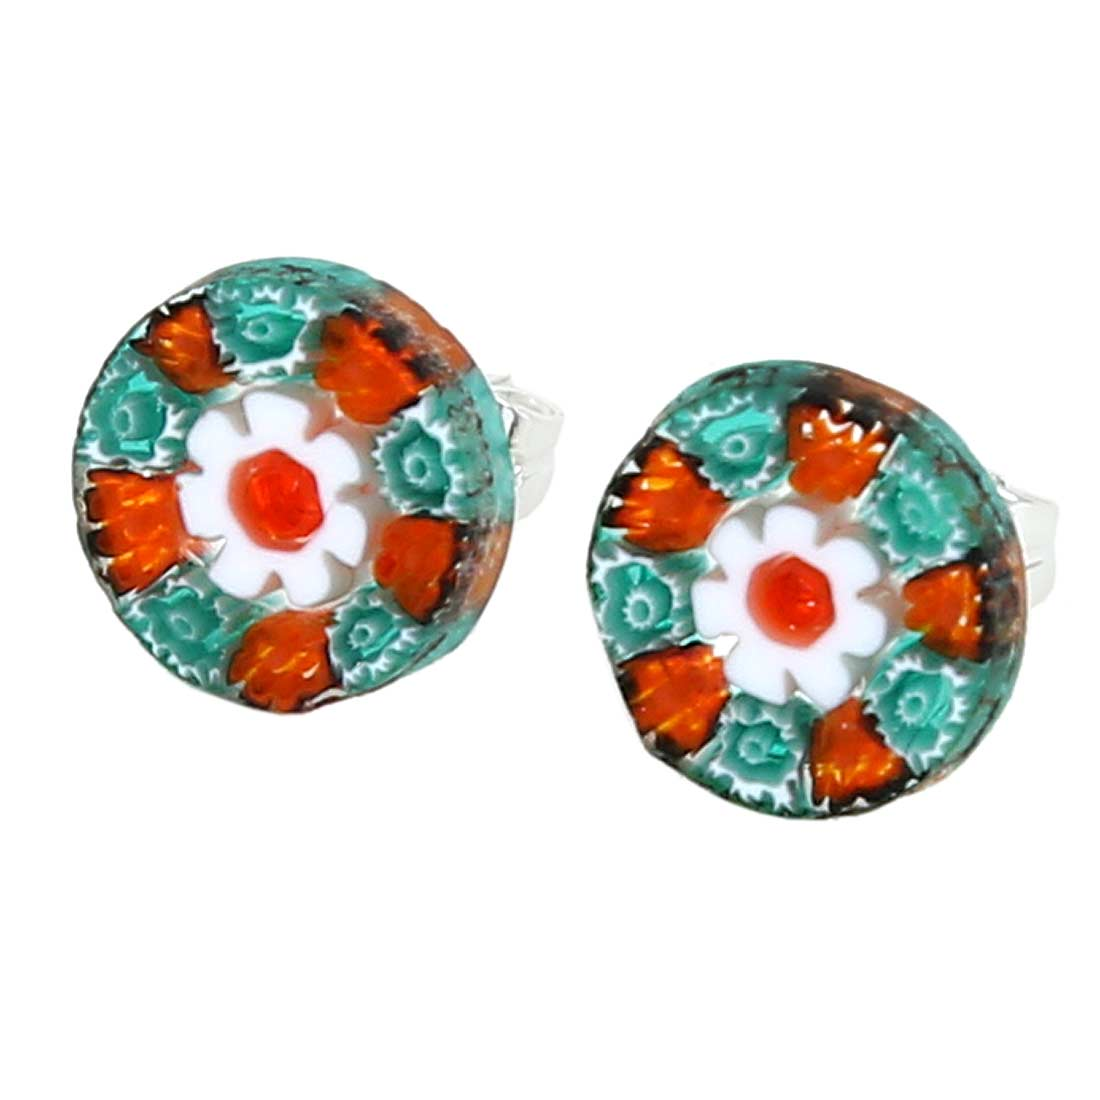 Millefiori Stud Earrings - Round #7